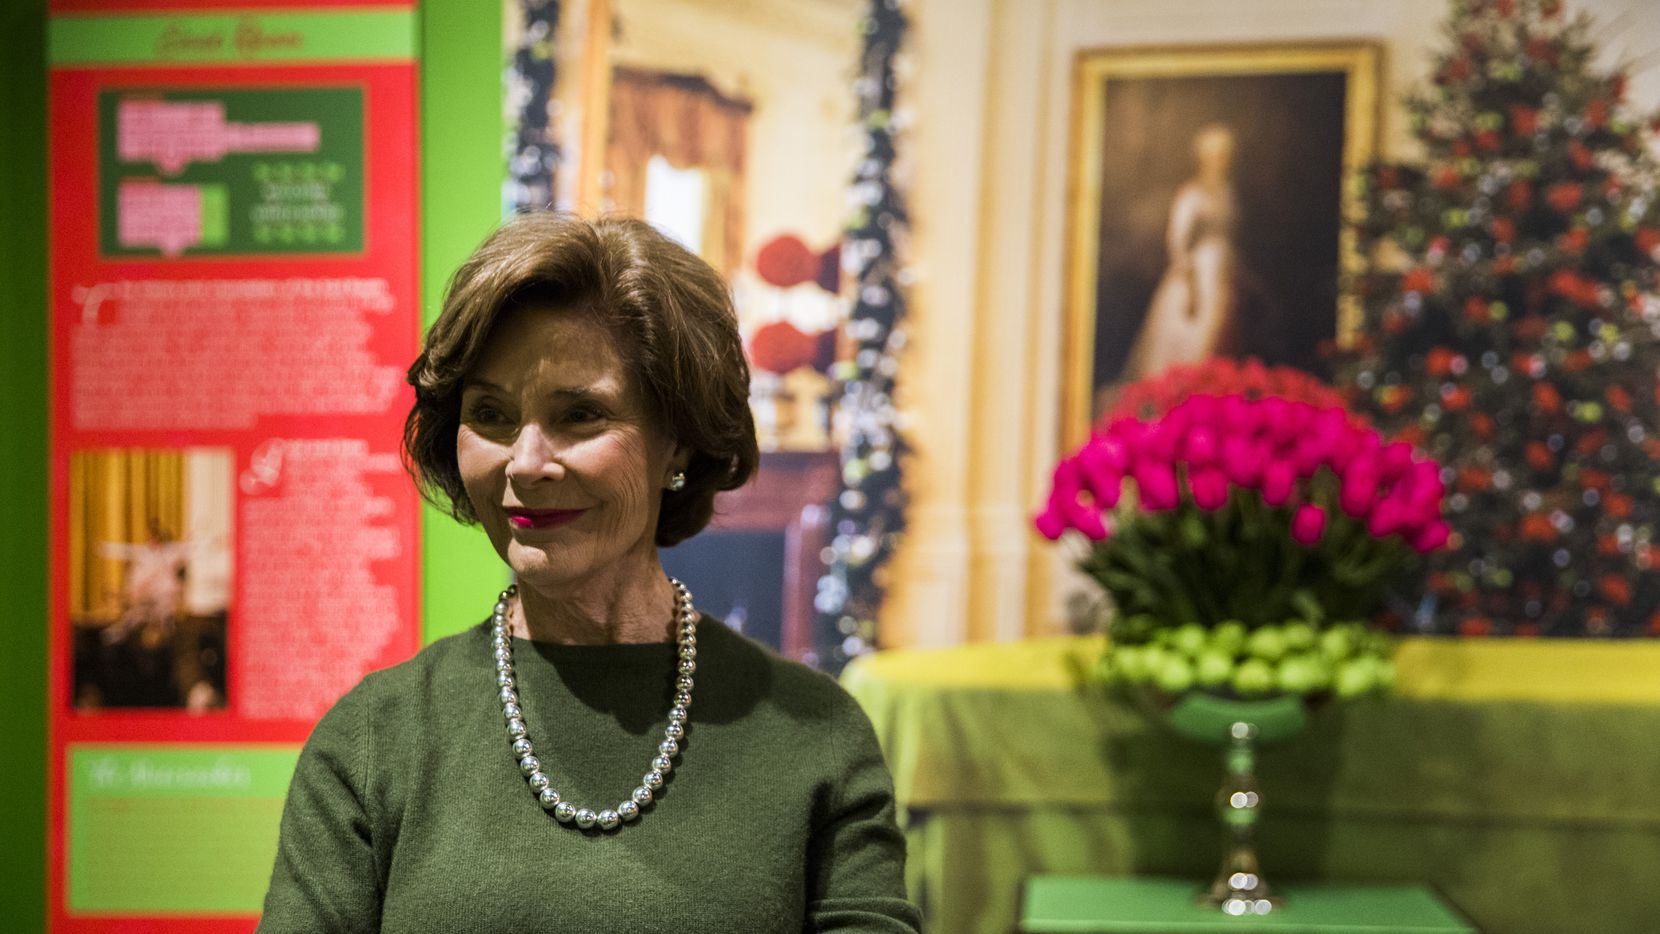 """Former first lady Laura Bush talked Tuesday about the """"All Things Bright and Beautiful"""" holiday exhibit at the George W. Bush Presidential Center in Dallas. The exhibit highlights Christmas and holiday decorations that were featured in the White House in 2005."""